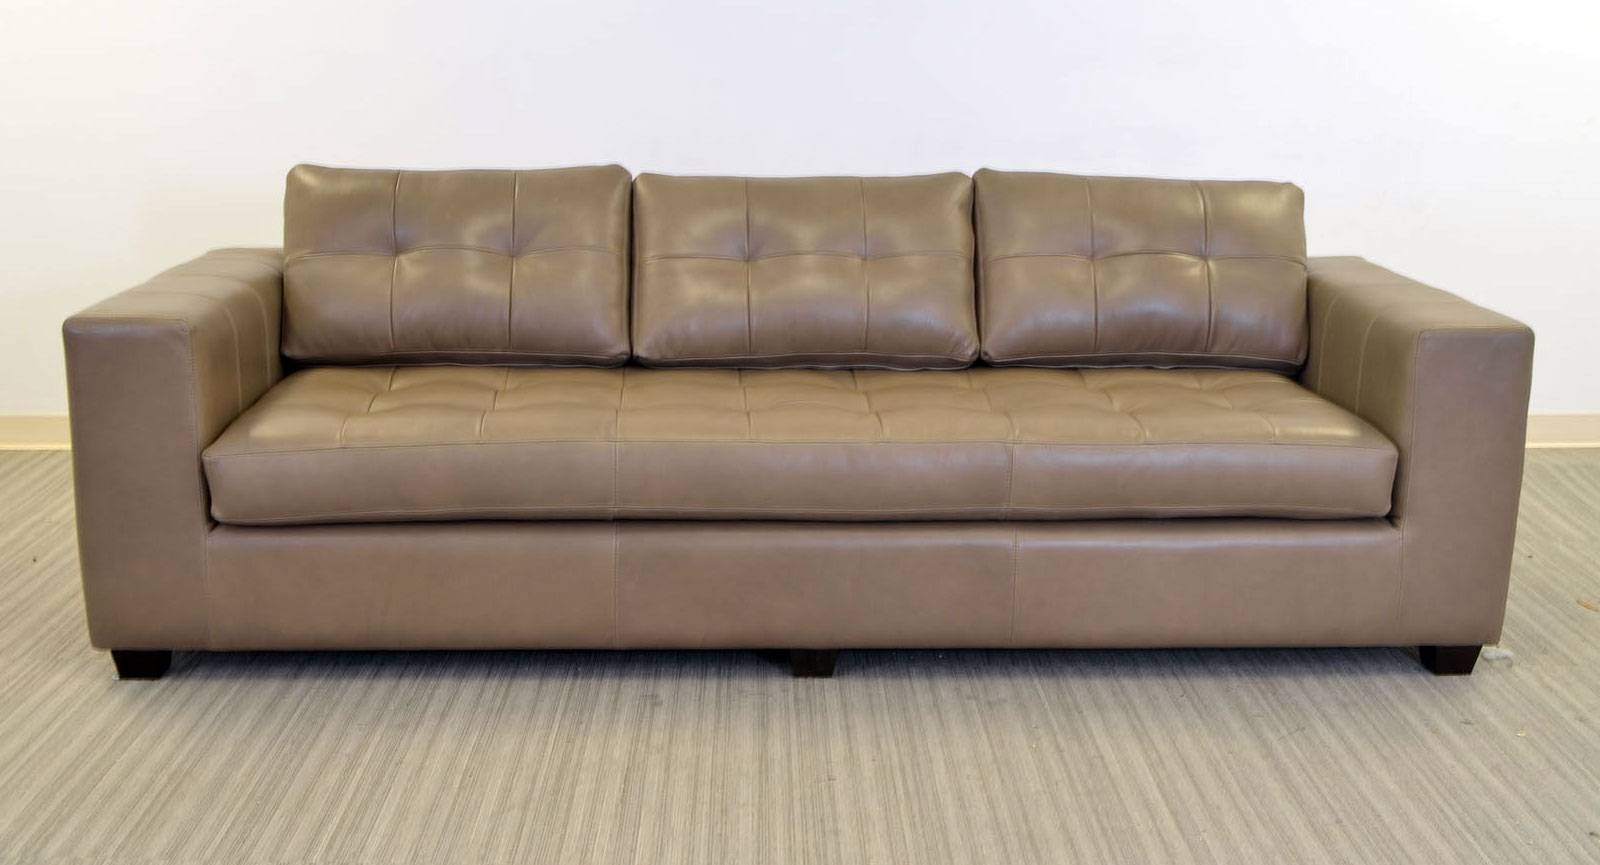 Gev Sofa ‹‹ The Leather Sofa Company pertaining to One Cushion Sofas (Image 7 of 30)